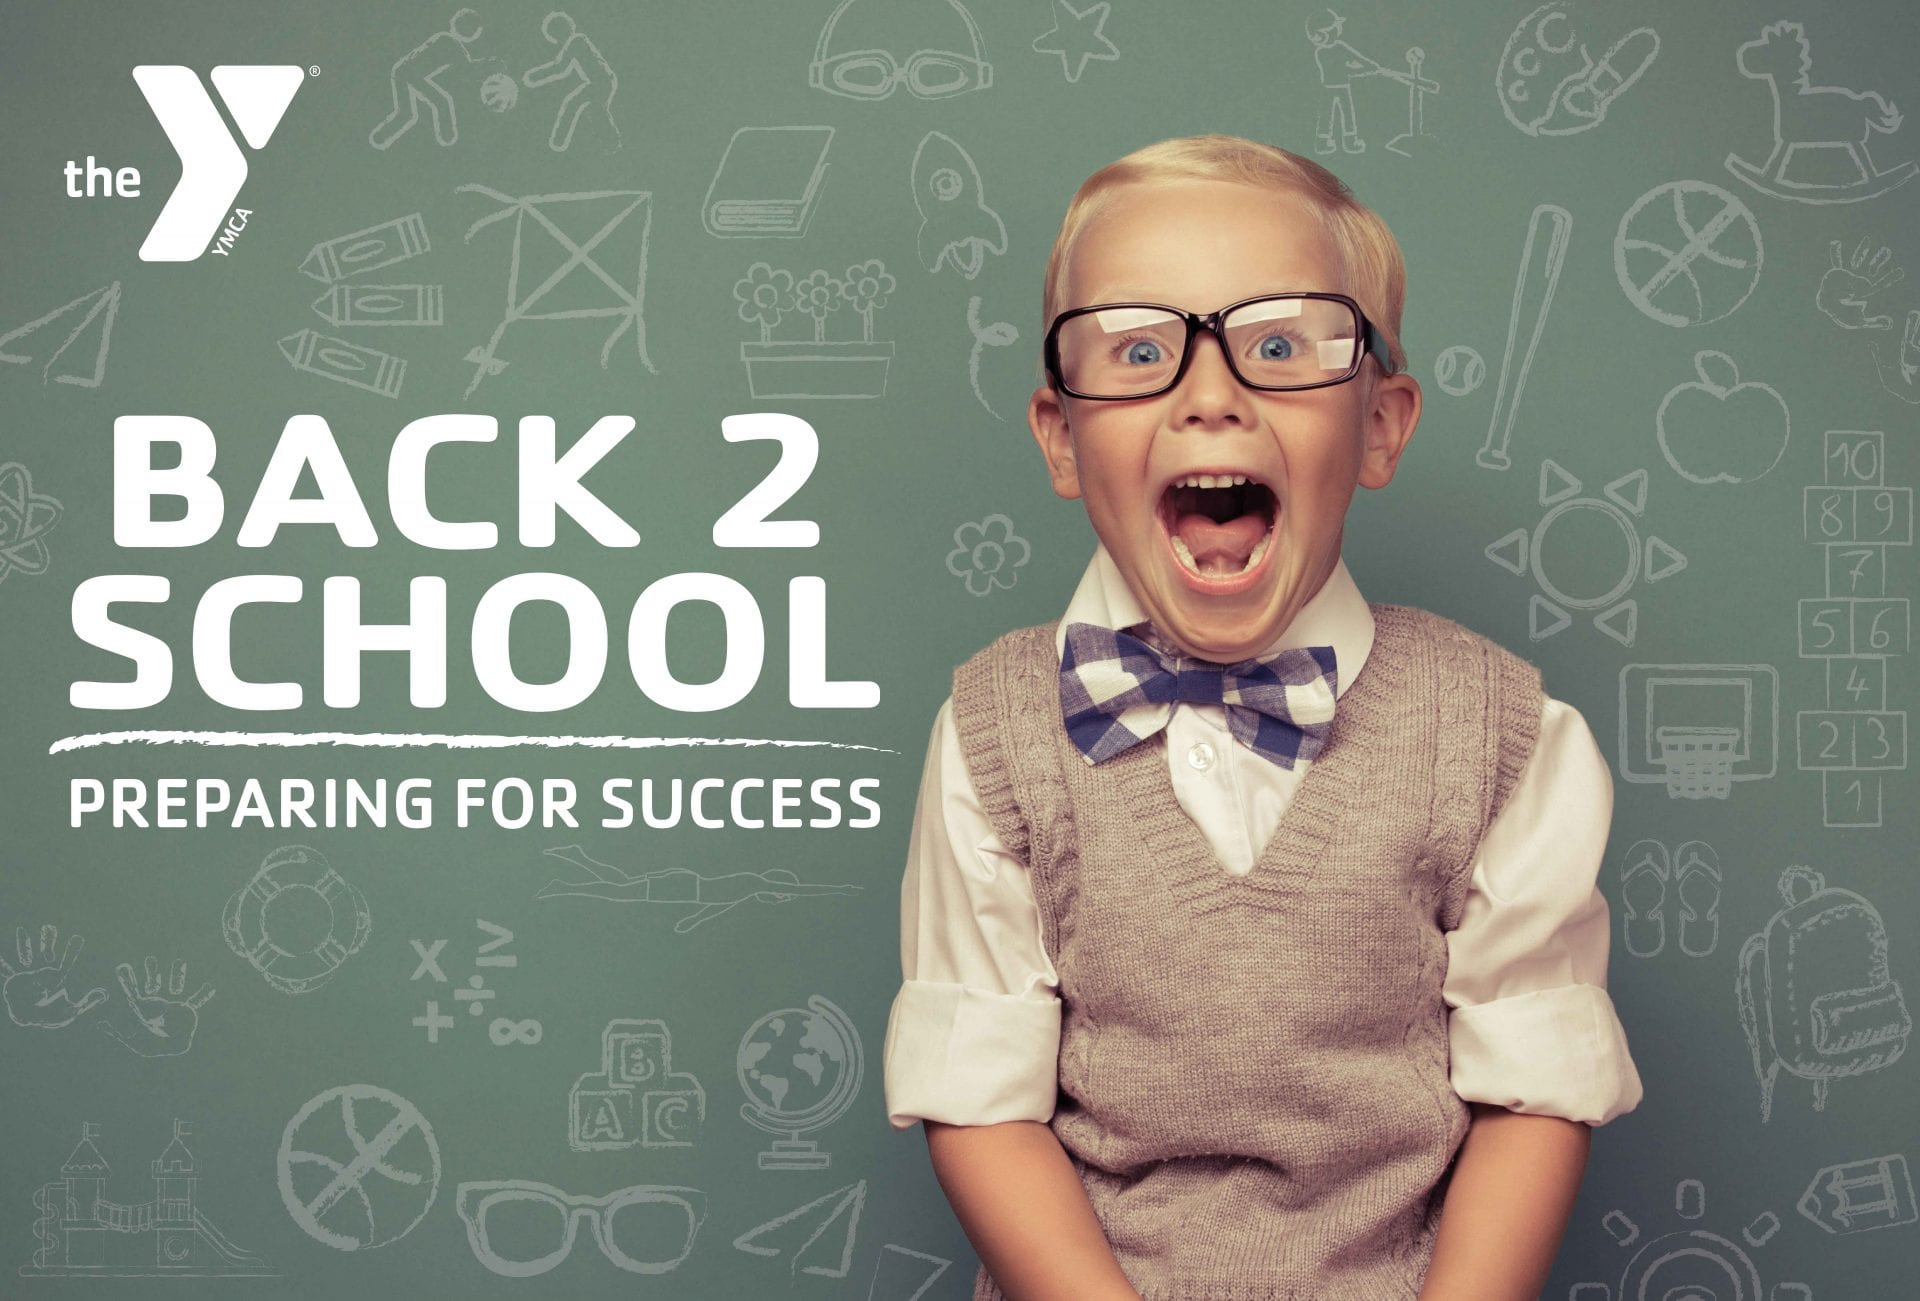 Back 2 School webpage header